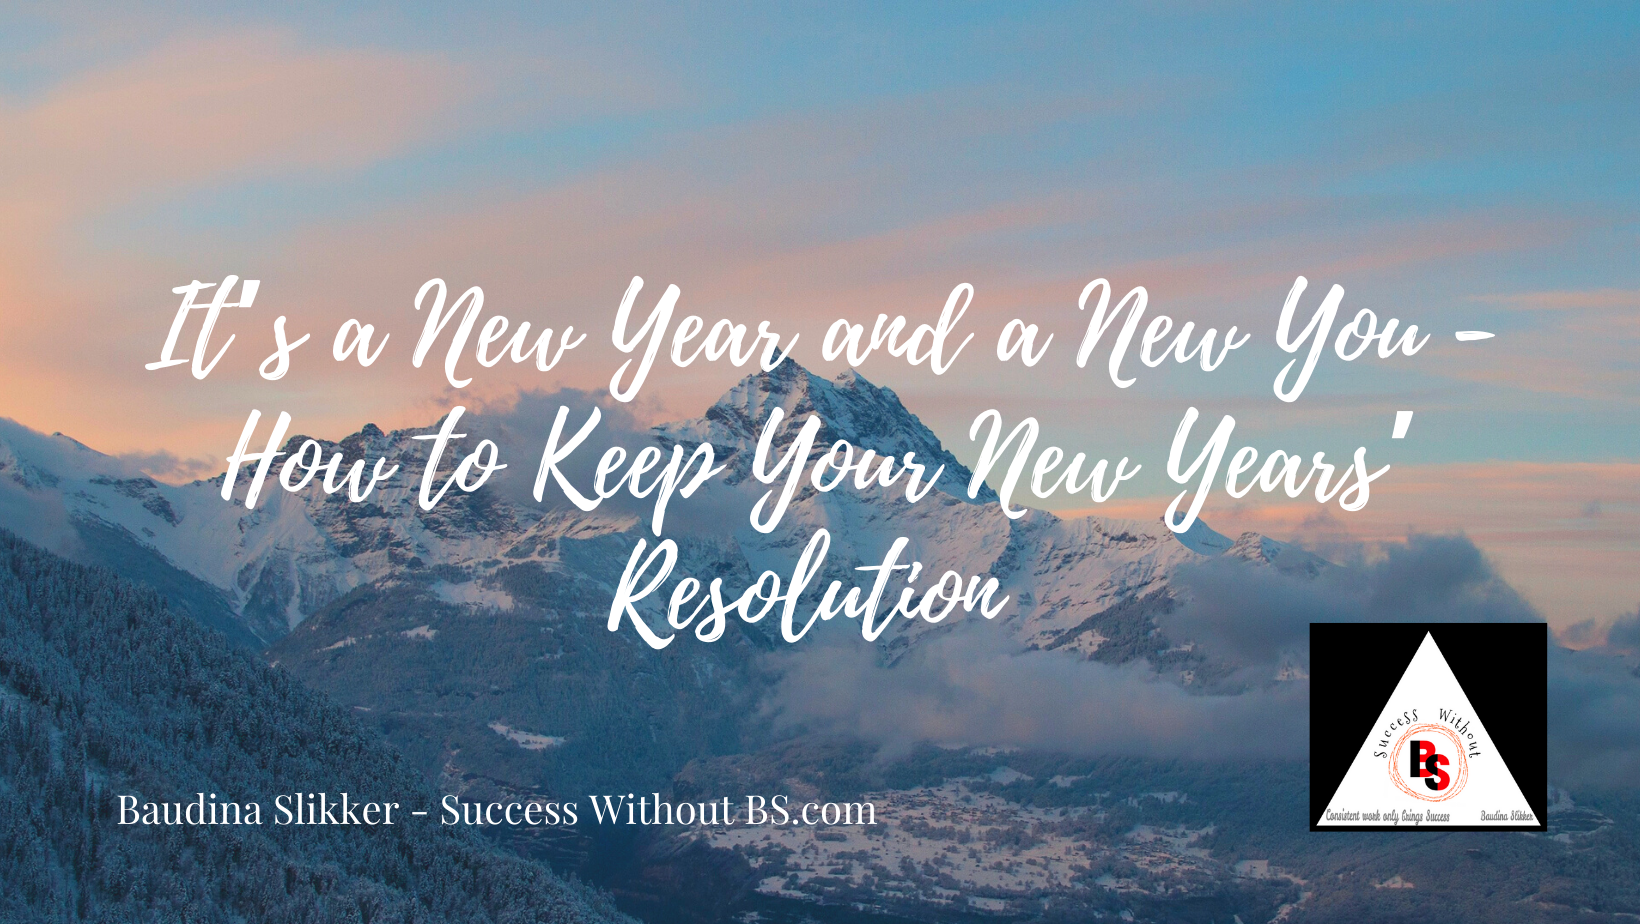 It's A New Year and A New You - How To Keep Your New Years Resolution